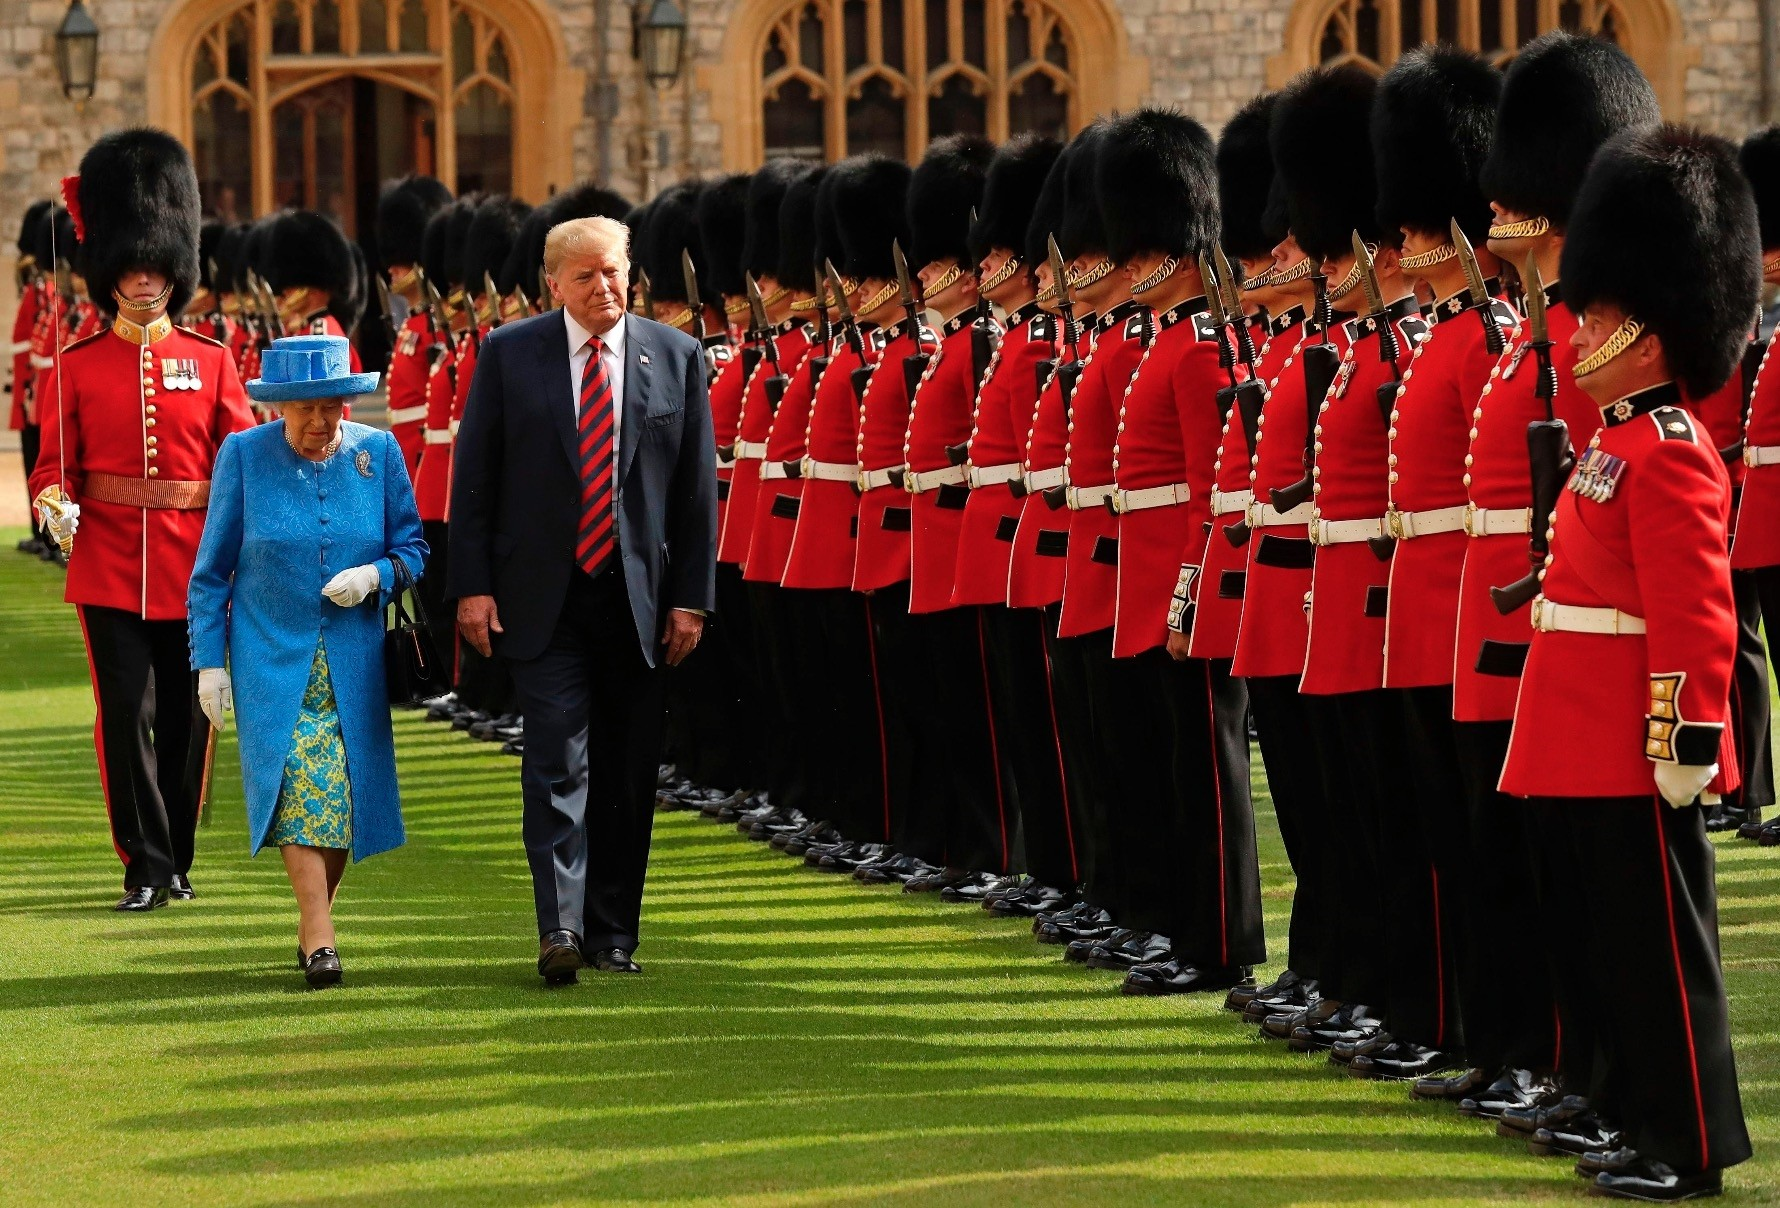 Britain's Queen Elizabeth II (L) and U.S. President Donald Trump inspect the guard of honor formed by the Coldstream Guards during a welcome ceremony at Windsor Castle, west of London, on the second day of Trump's U.K. visit, July 13.